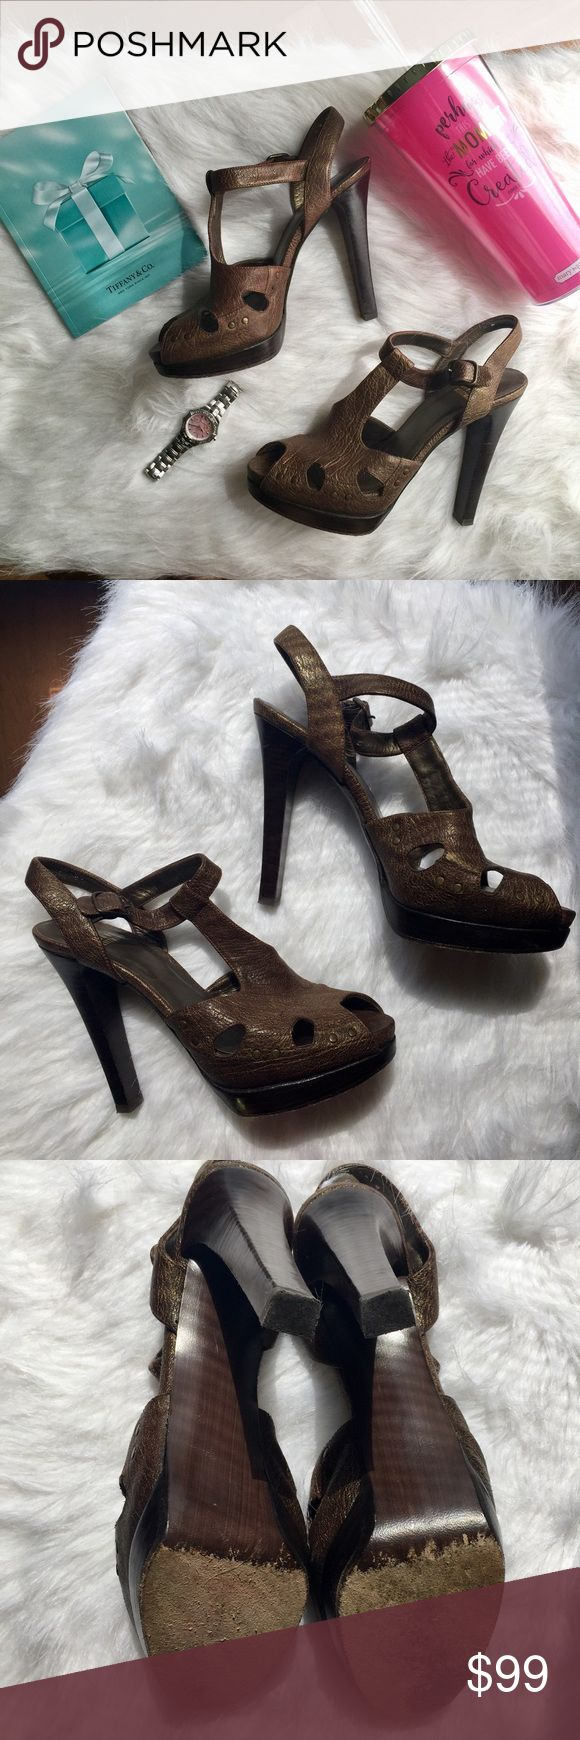 "Stuart Weitzman Teasdale T Strap Double Platform DESCRIPTION These pebbled leather T-strap sandals feature a distressed metallic finish and cutout vamp. Buckled ankle strap. 1.5"" hidden and stacked platform and 4.75"" stacked heel. Leather sole.  * Made in Spain. * Gorgeous but not my size, a size too big but they feel incredible with the double platform support. Stuart Weitzman Shoes Sandals"